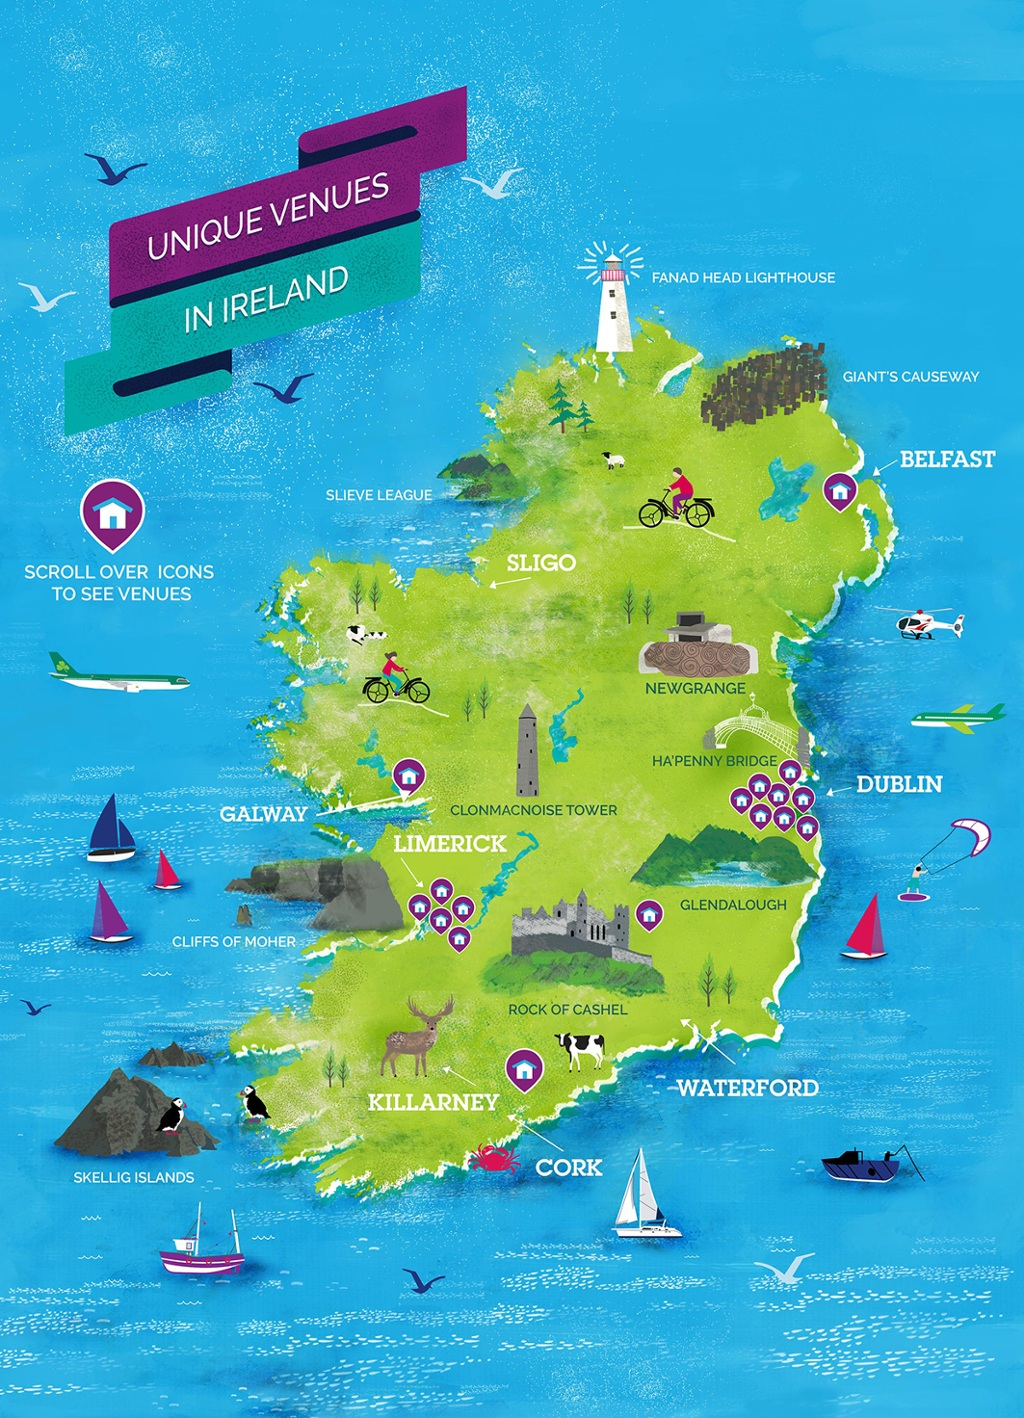 Map of Unique Venues in Ireland